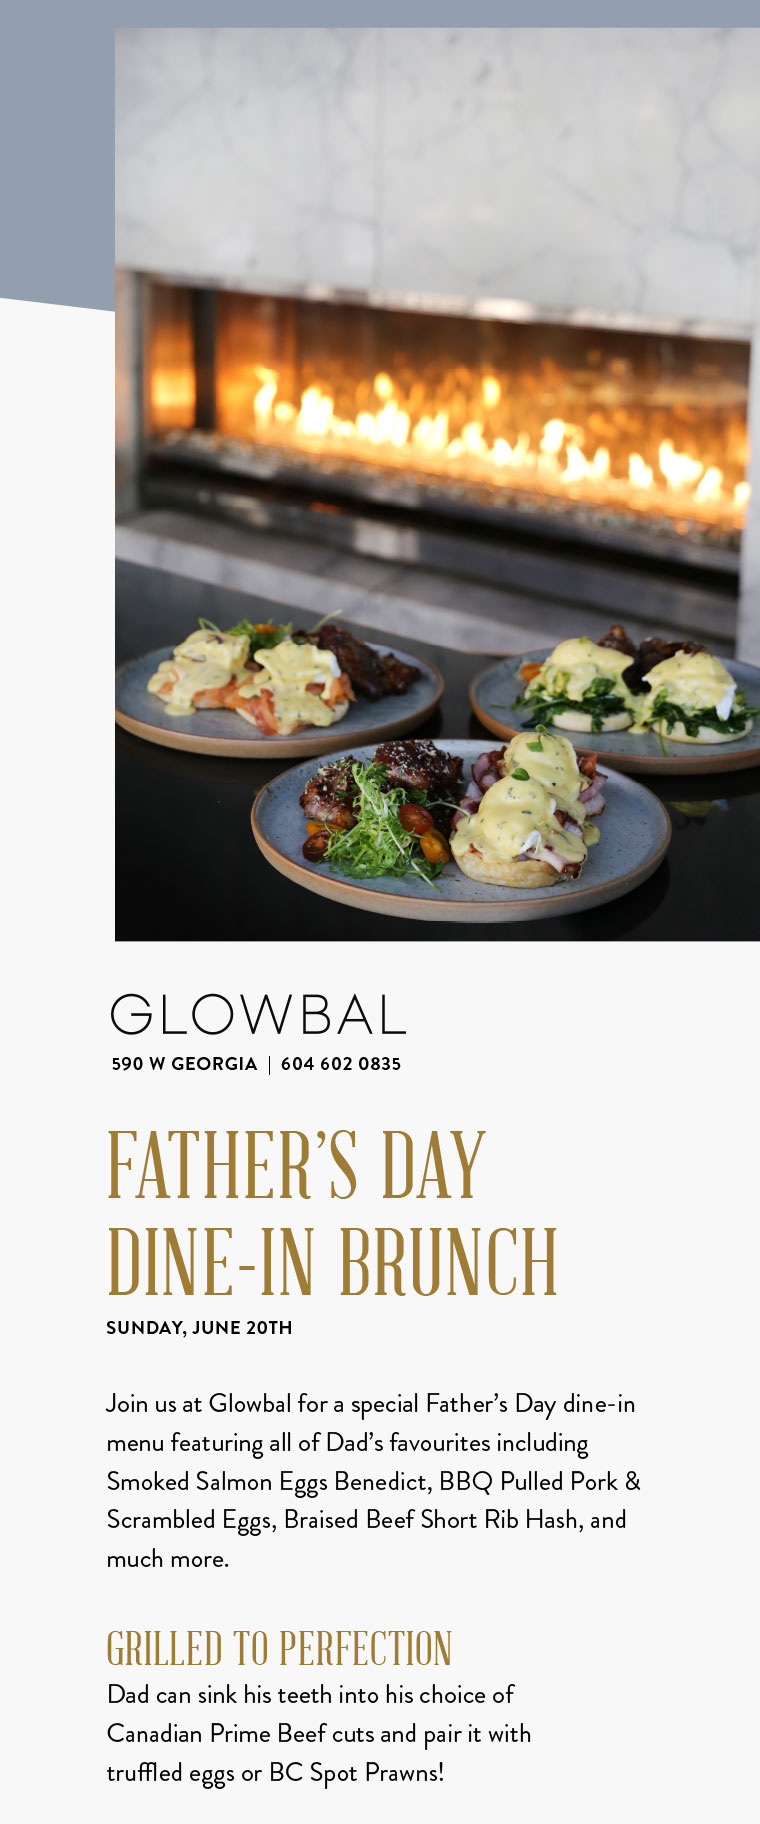 FATHER'S DAY DINE-IN BRUNCH SUNDAY, JUNE 20TH  Join us at Glowbal for a special Father's Day dine-in menu featuring all of Dad's favourites including Smoked Salmon Eggs Benedict, BBQ Pulled Pork & Scrambled Eggs, Braised Beef Short Rib Hash, and much more.